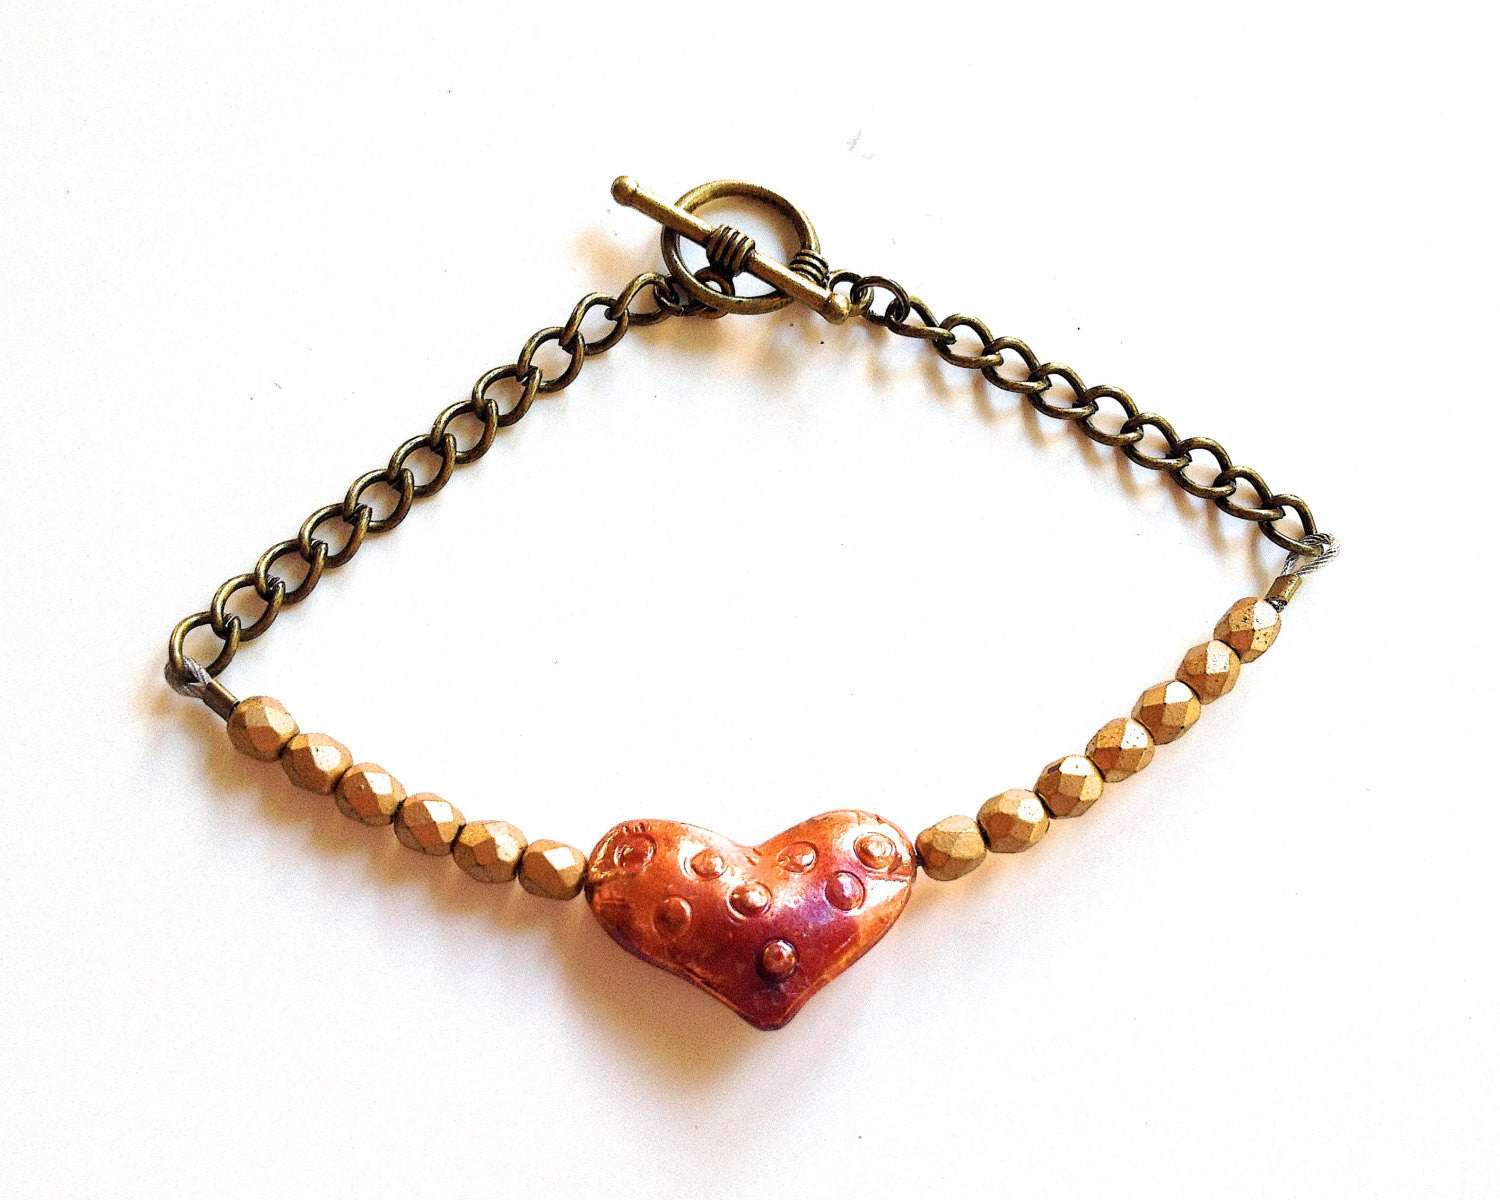 Beautiful Copper Heart and Matte Gold Czech Glass Beaded Bracelet. Simple, Classic, ElegantGgift for Mother's Day, Anniversary or Birthday.